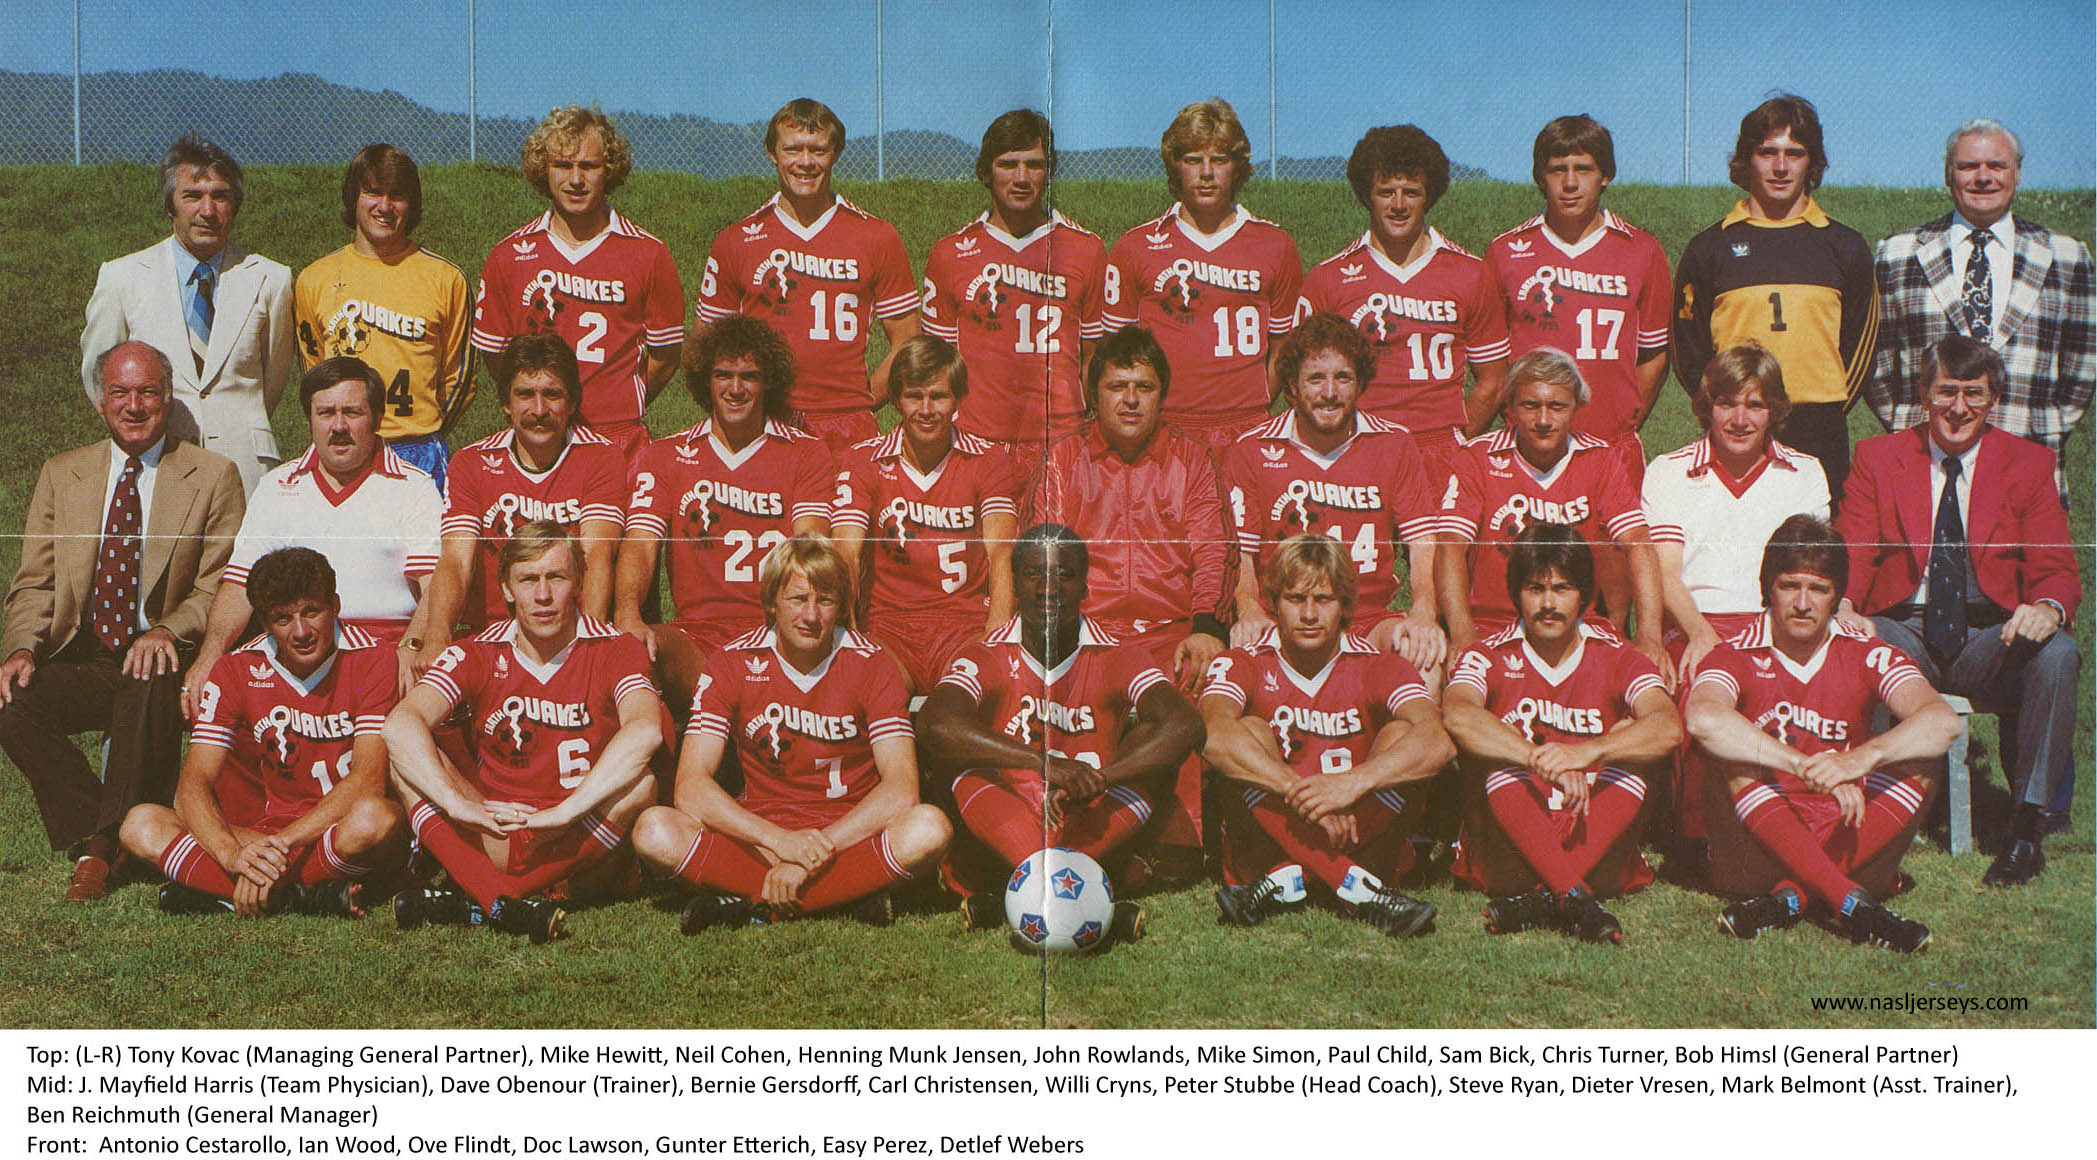 Earthquakes 79 Road Team.jpg